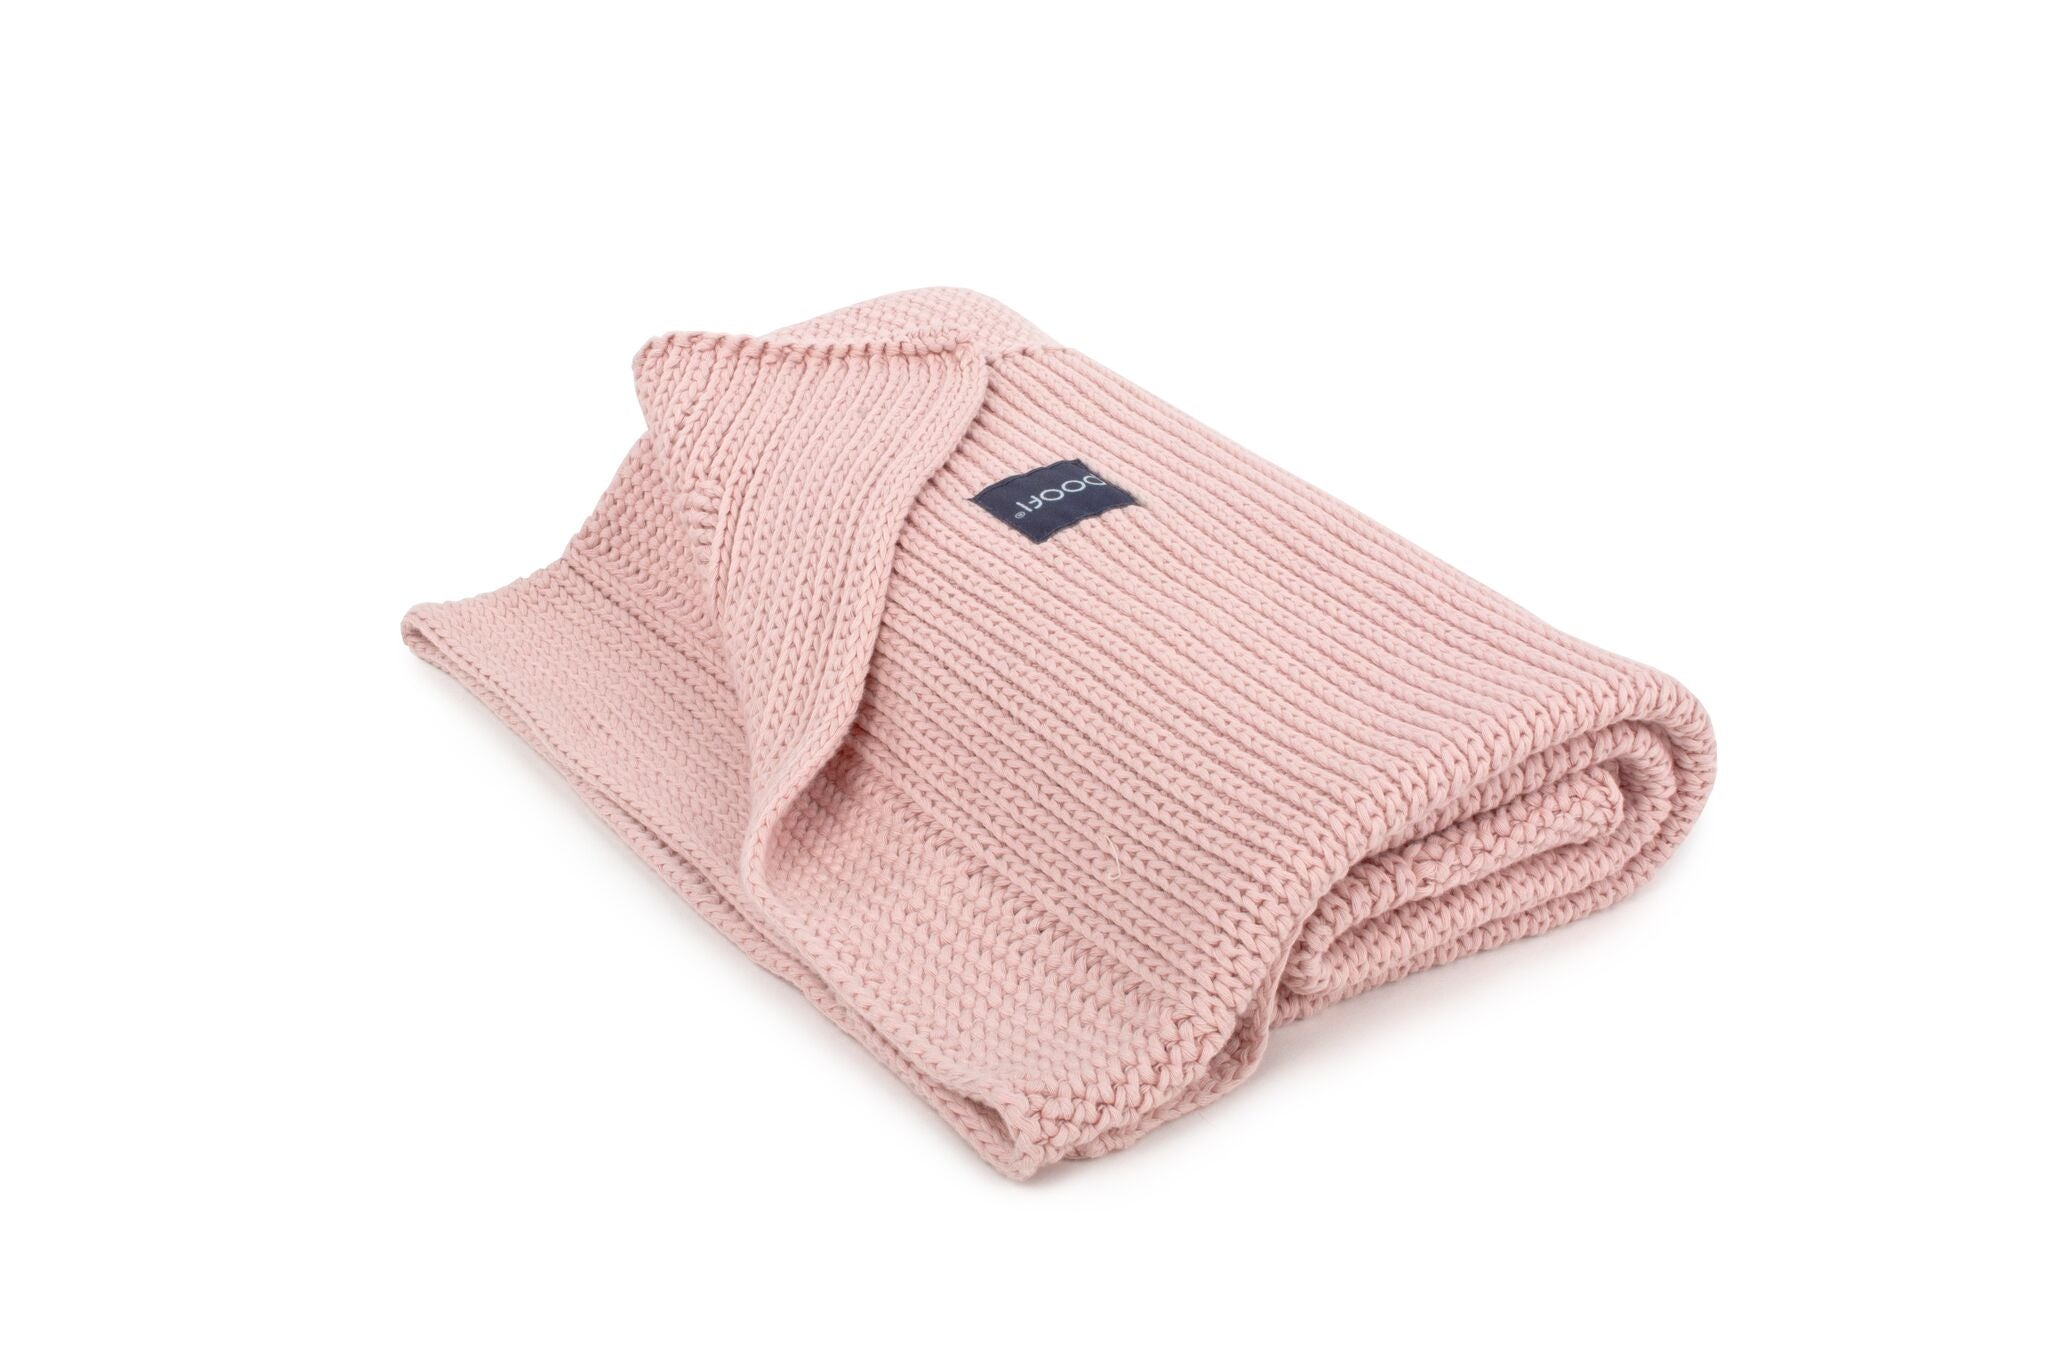 KNITTED ORGANIC COTTON BLANKET VINTAGE PINK